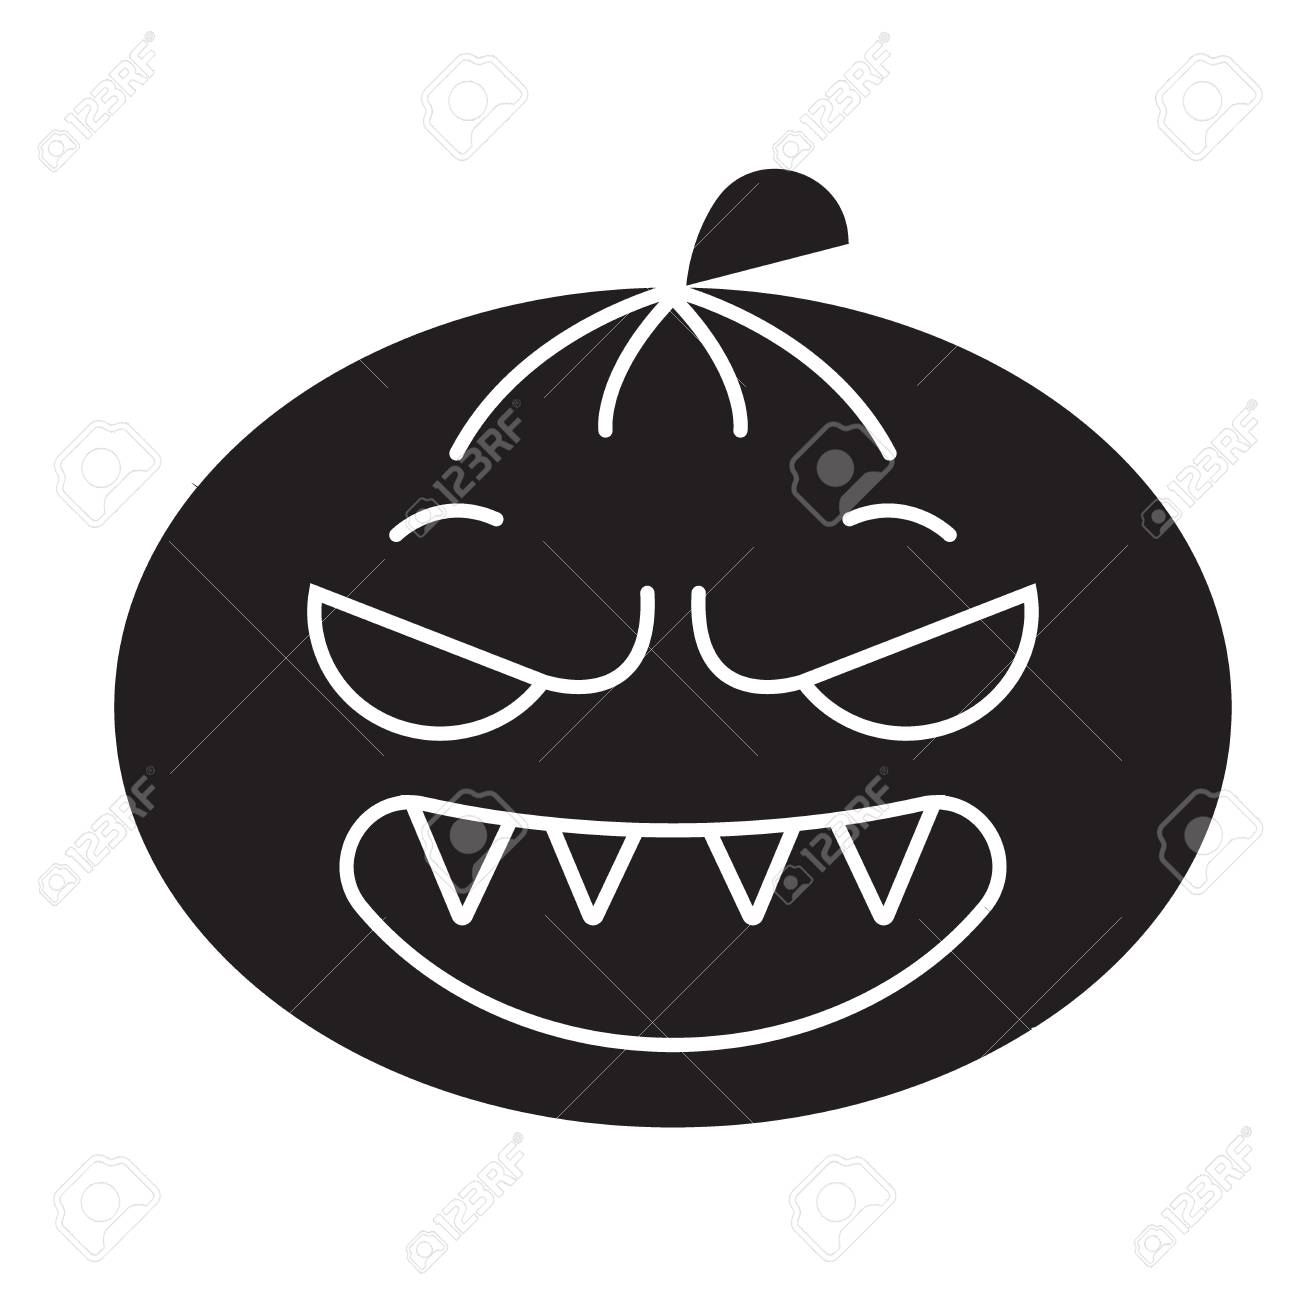 Halloween emoji black vector concept icon  Halloween emoji flat